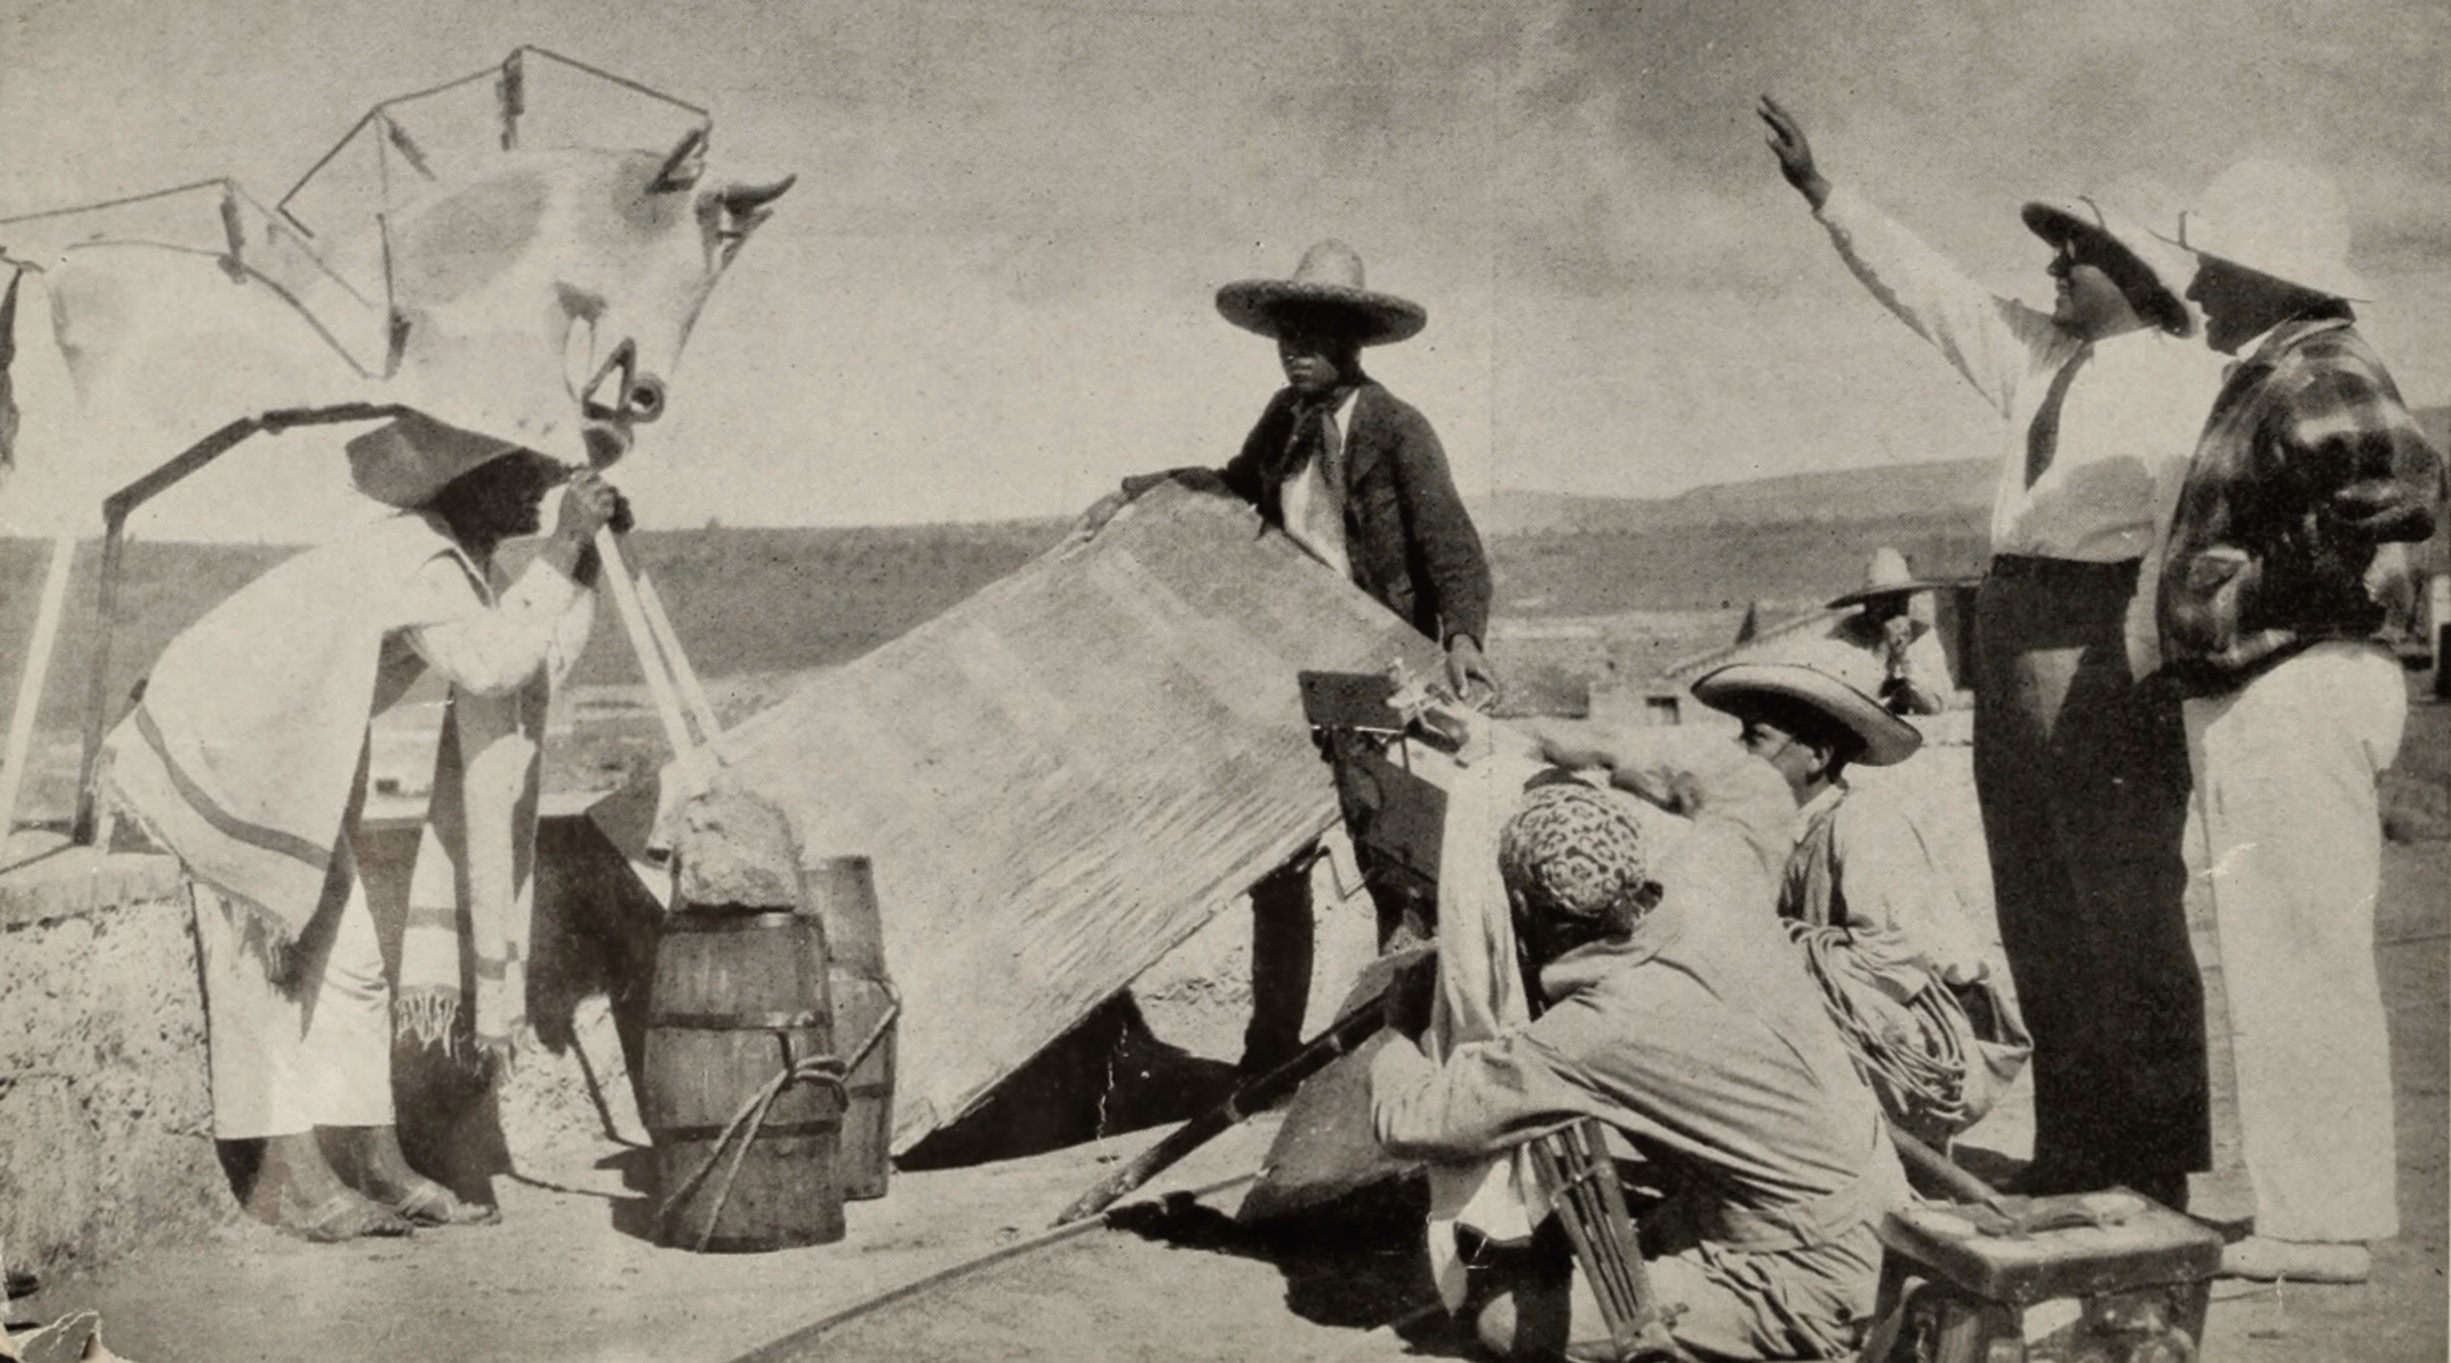 A still from Eisenstein's film shoot in Mexico